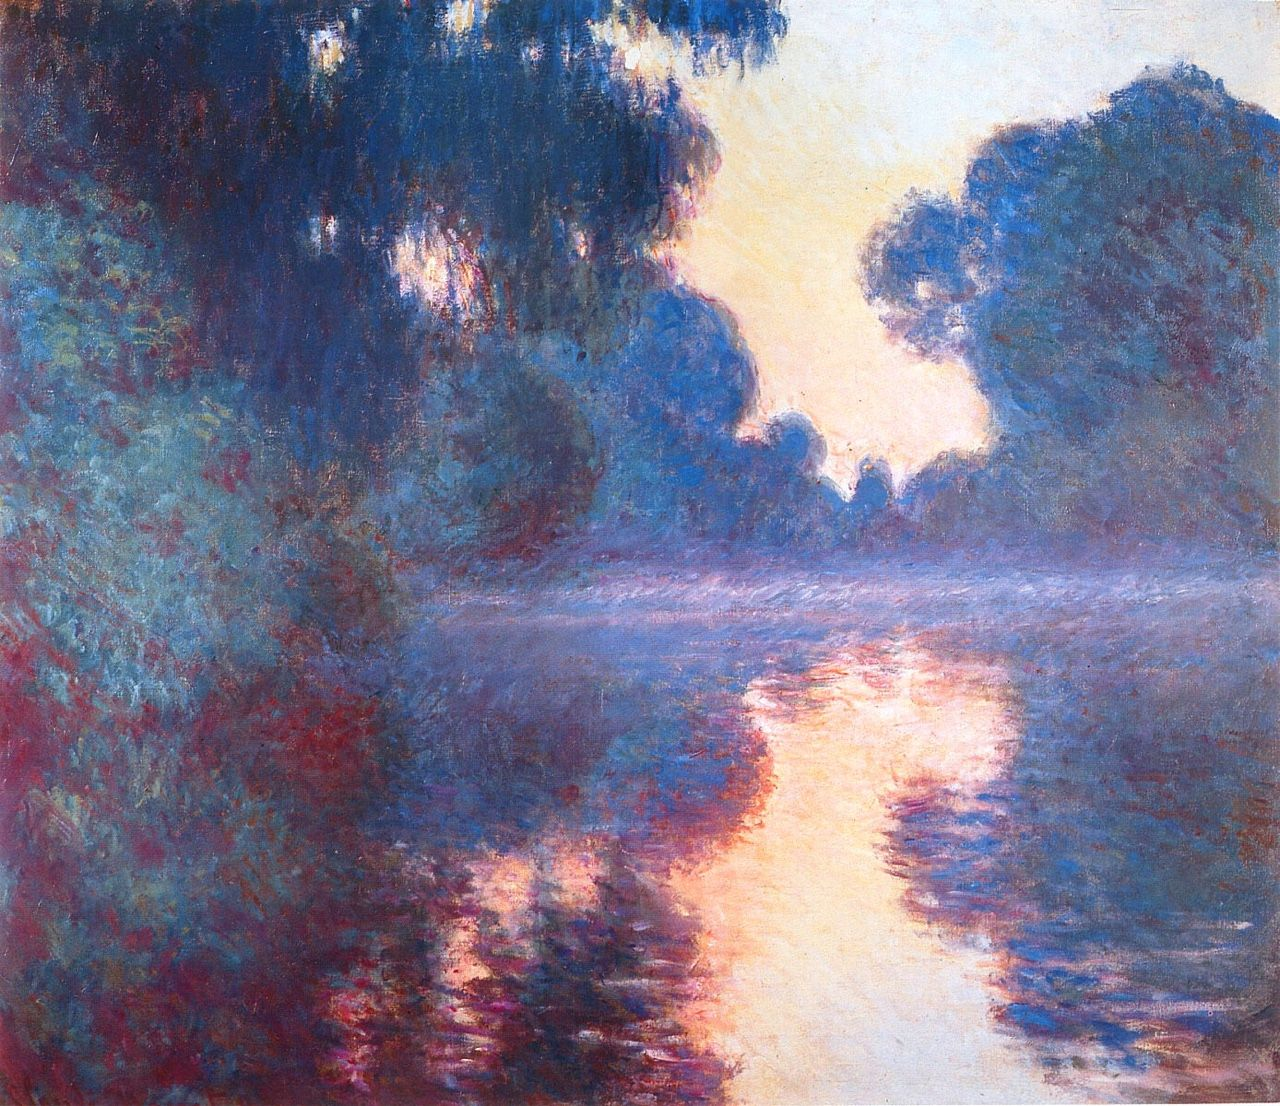 Misty Morning on the Seine in Bue Claude Monet, 1897